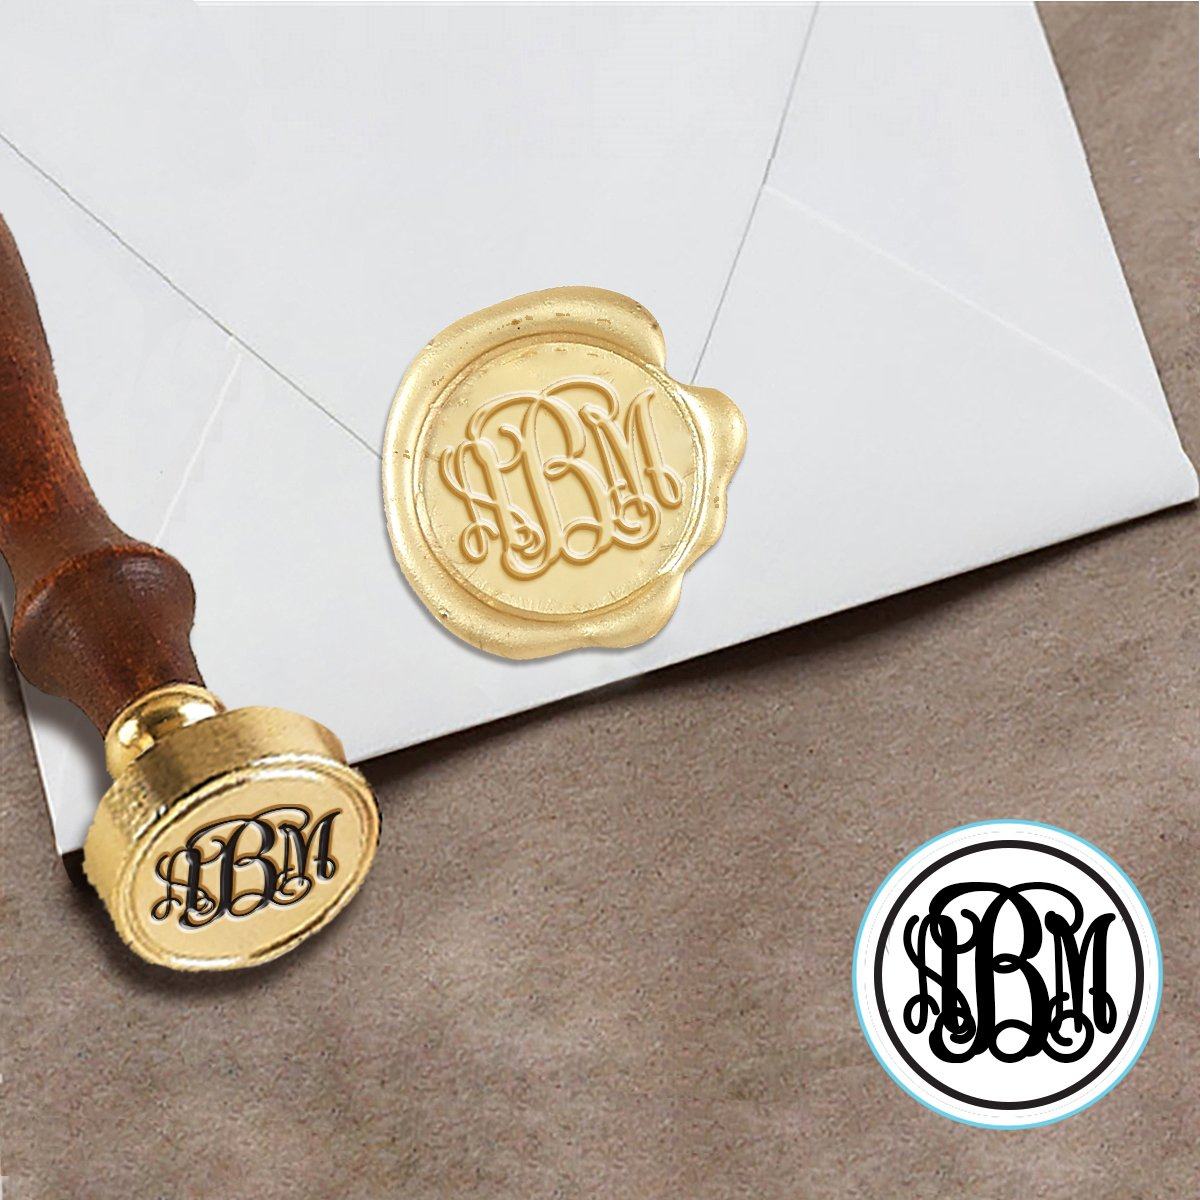 Custom Wax Seal Stamp Kit With Sealing 1 Die Tiffany Script Monogram 3 Letters